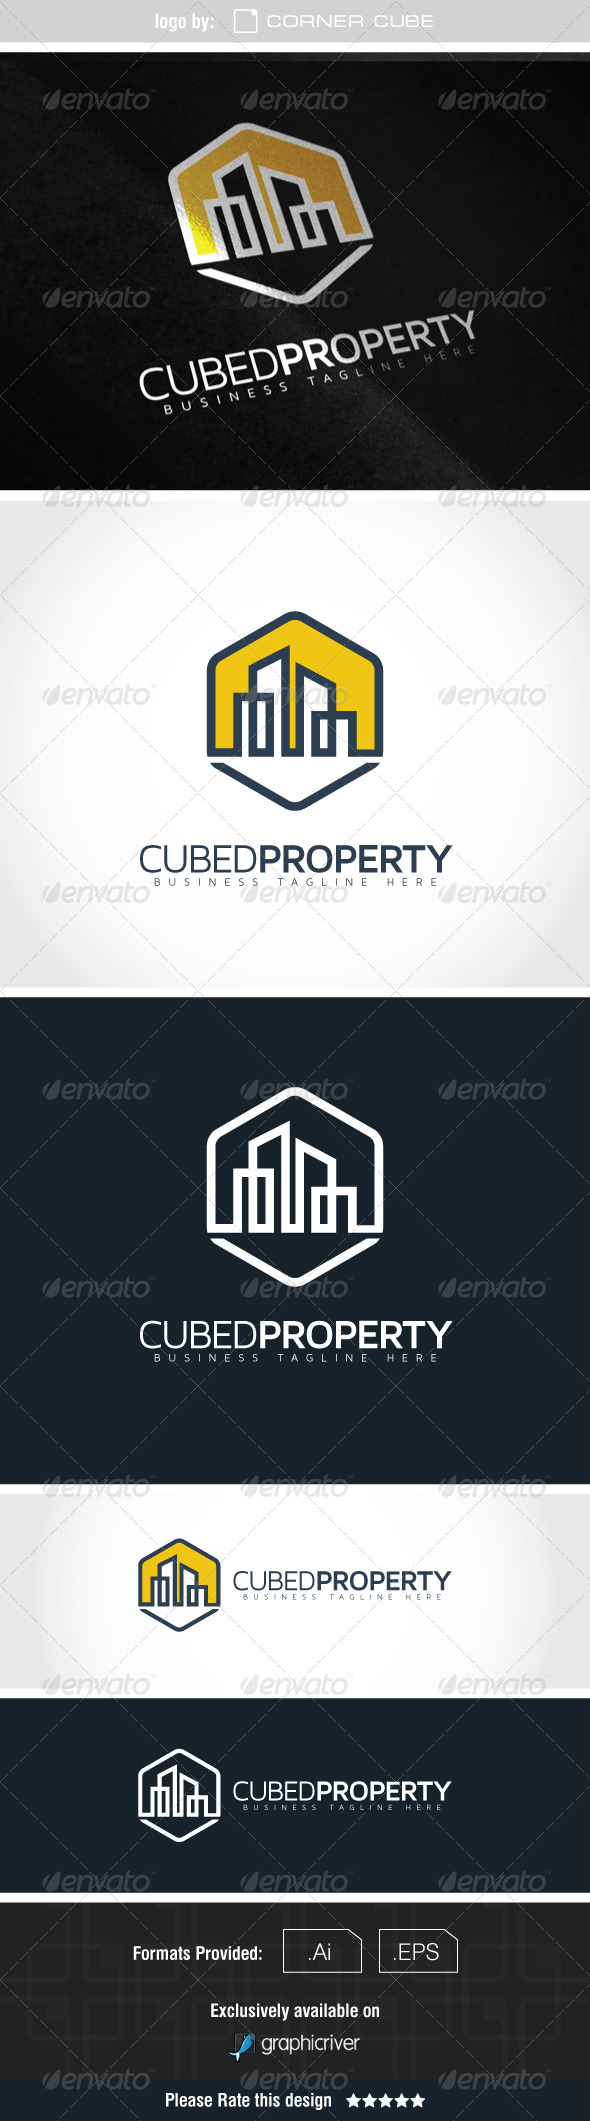 GraphicRiver Cubed Property Logo 7591686